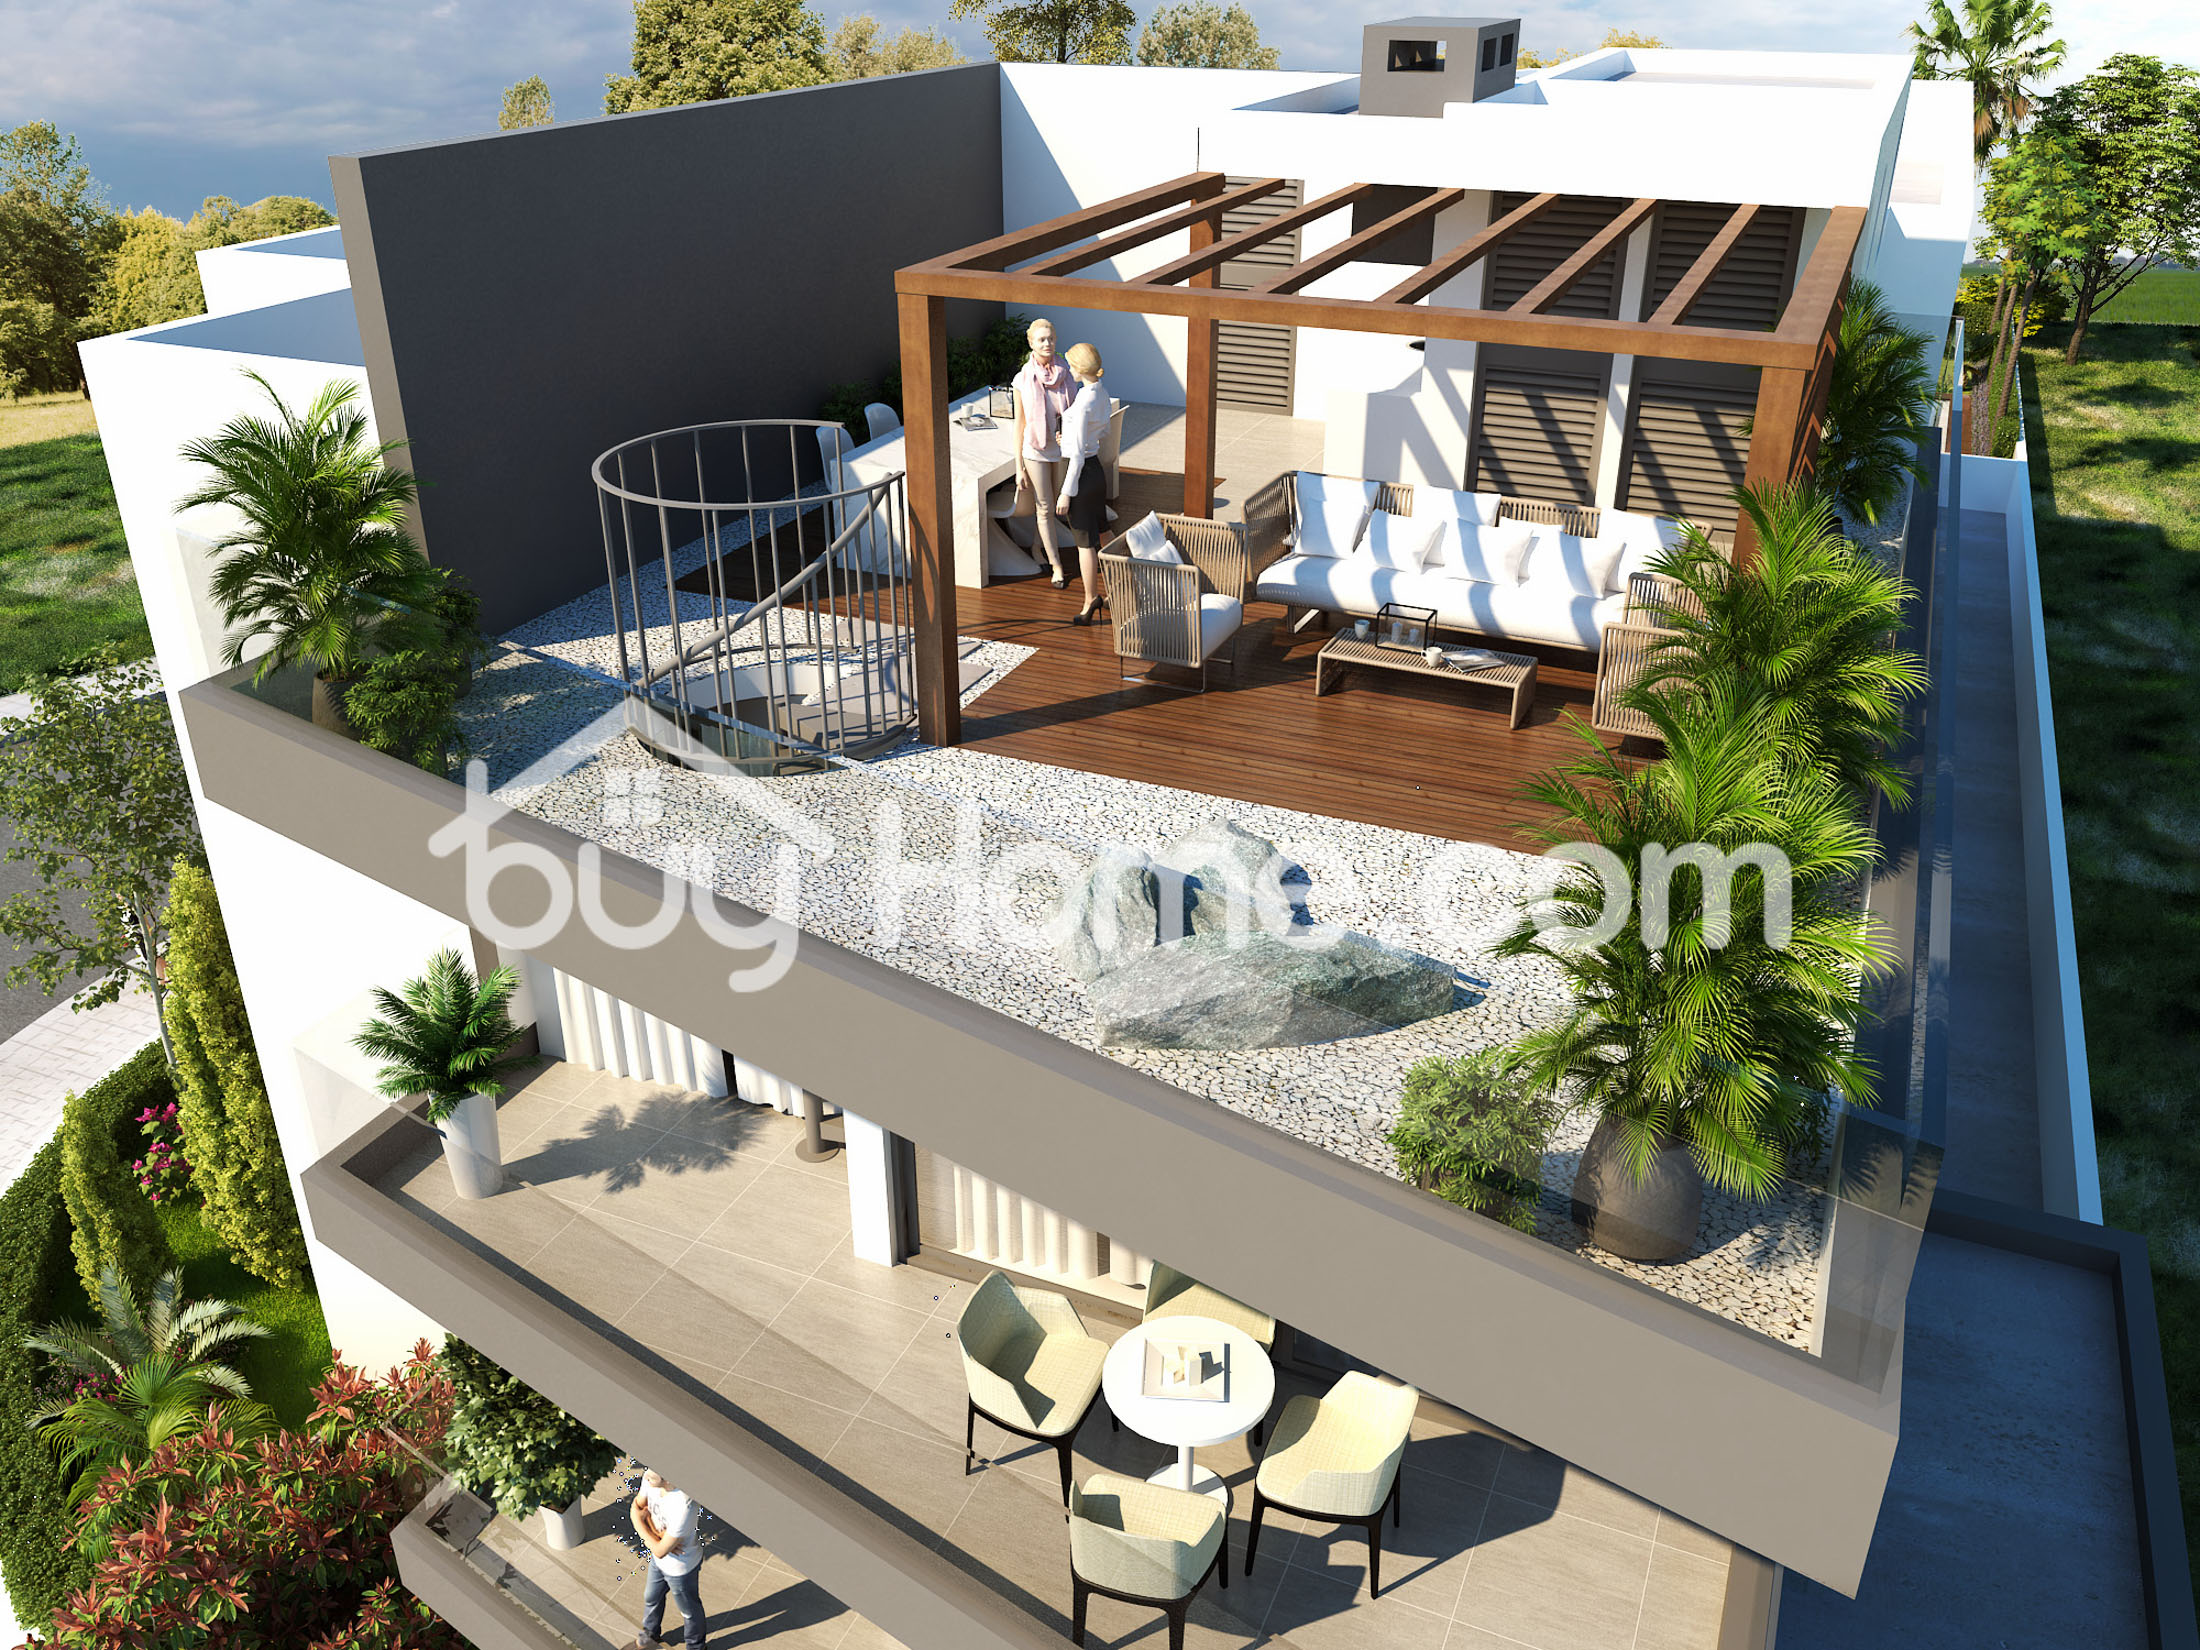 3 Bed Penthouse With Roof Garden | BuyHome